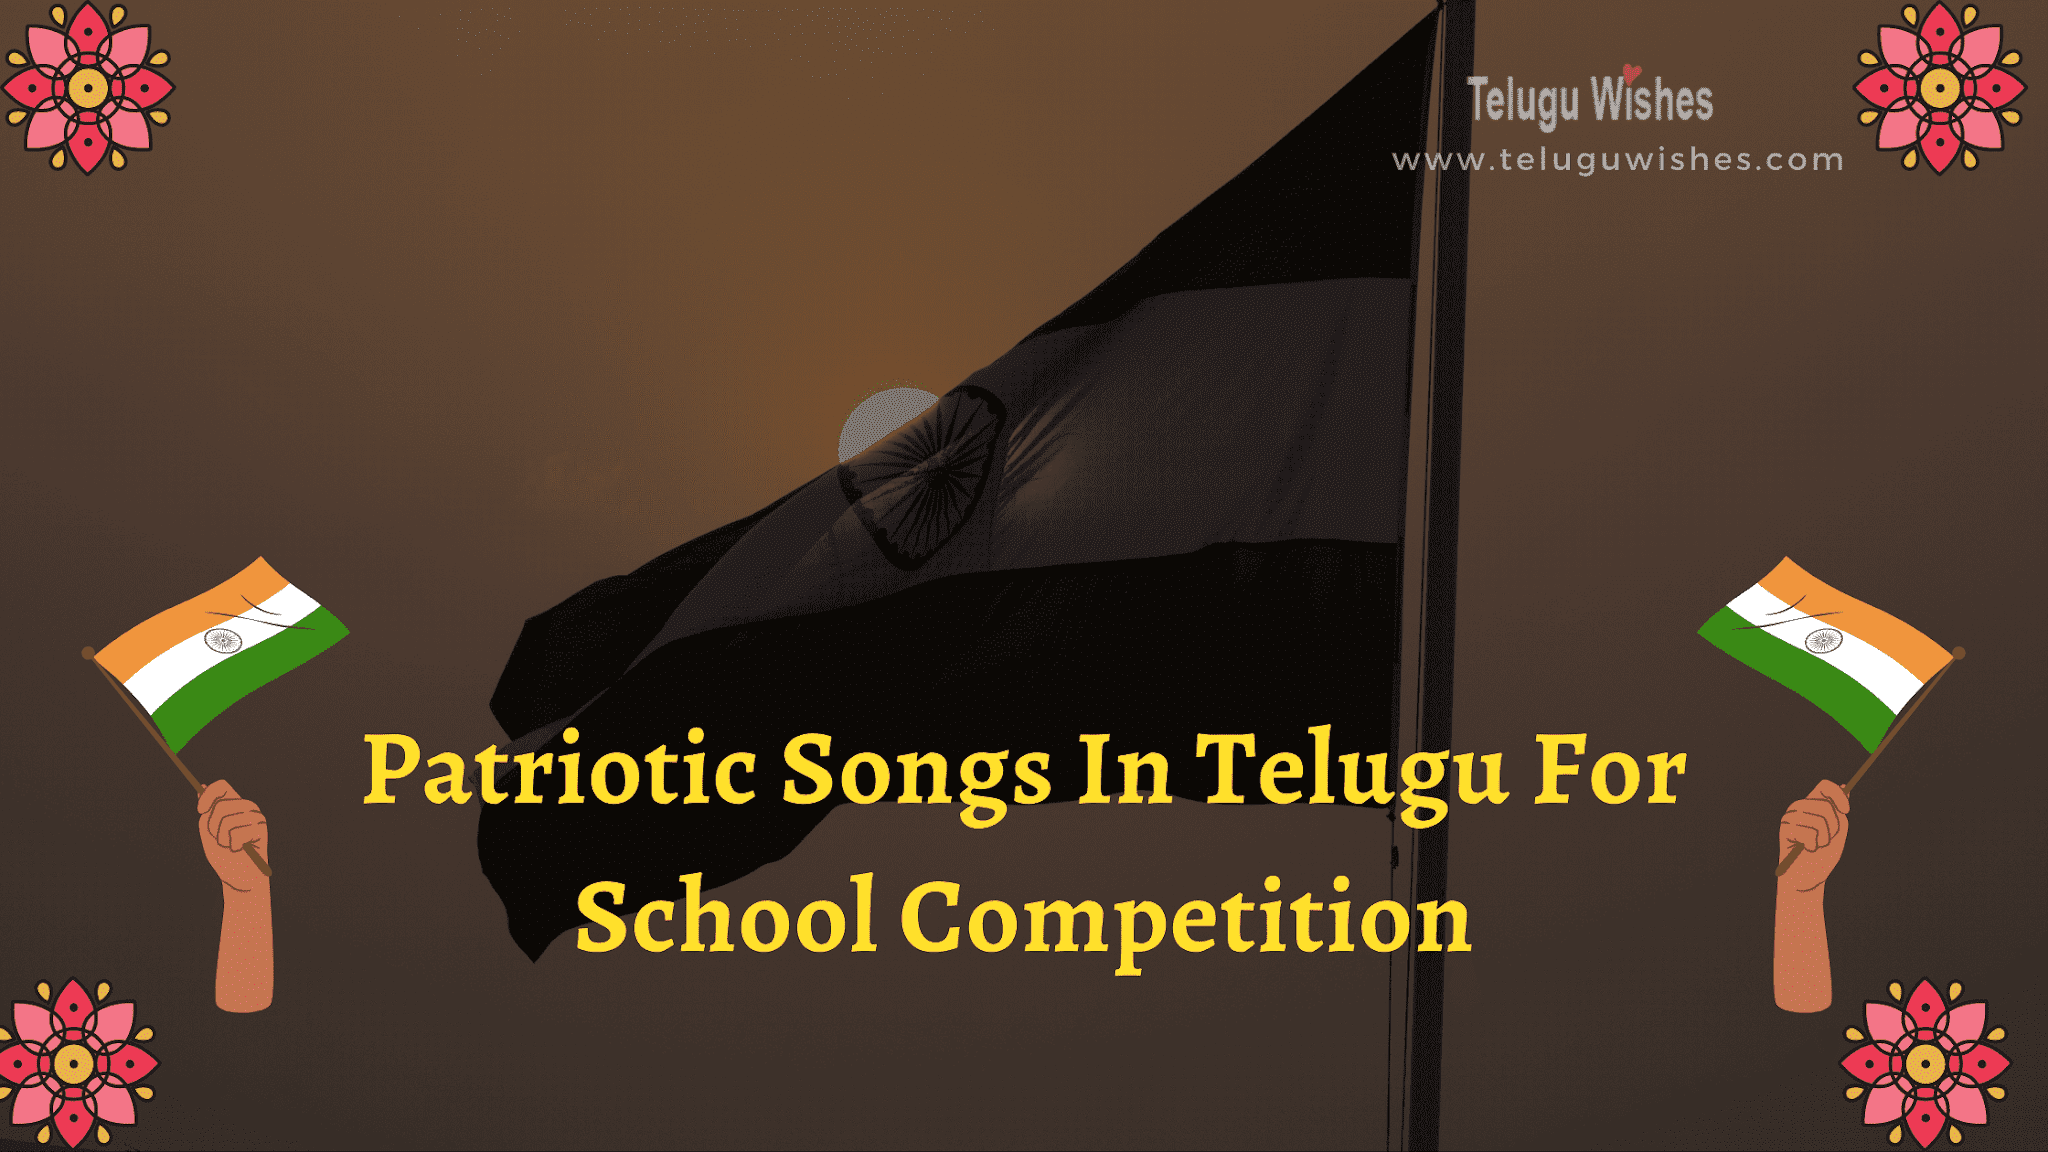 Patriotic Songs In Telugu For School Competition